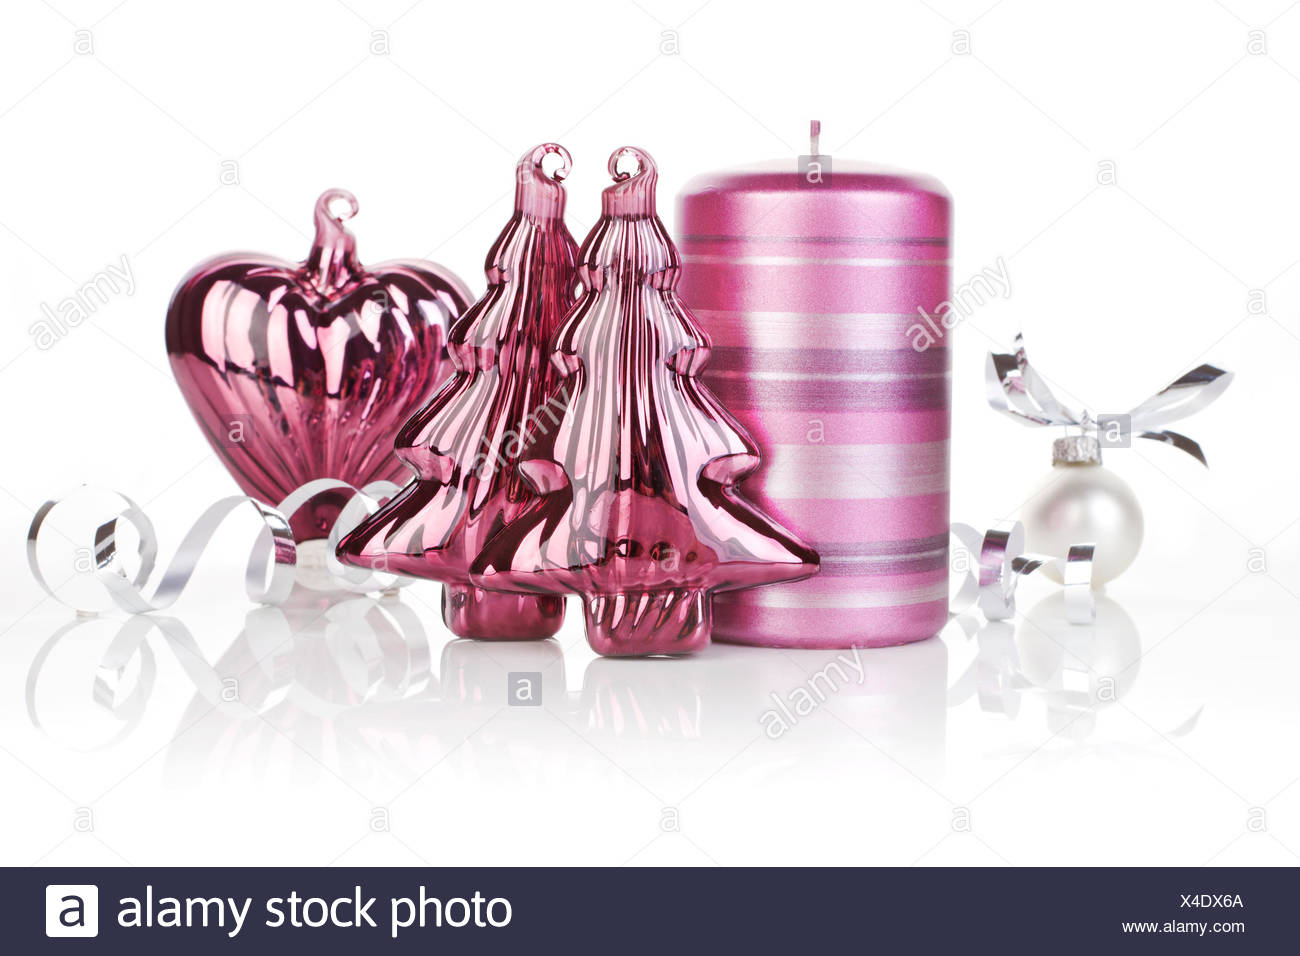 objects isolated holiday - Stock Image